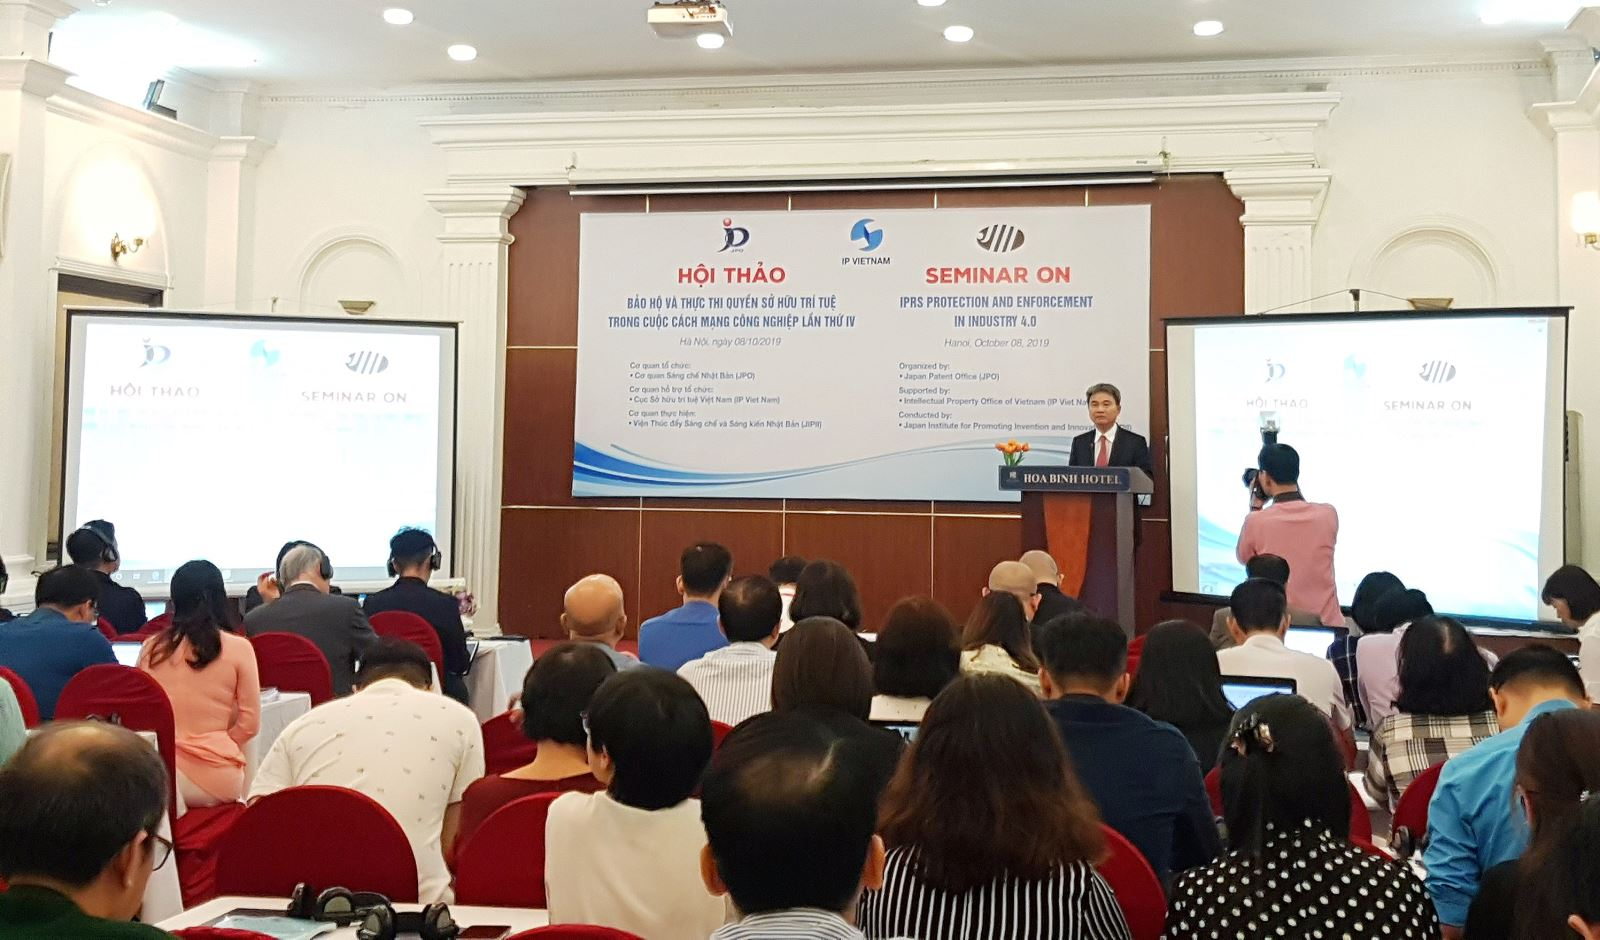 Seminar on IP Rights Protection and Enforcement in Industry 4.0